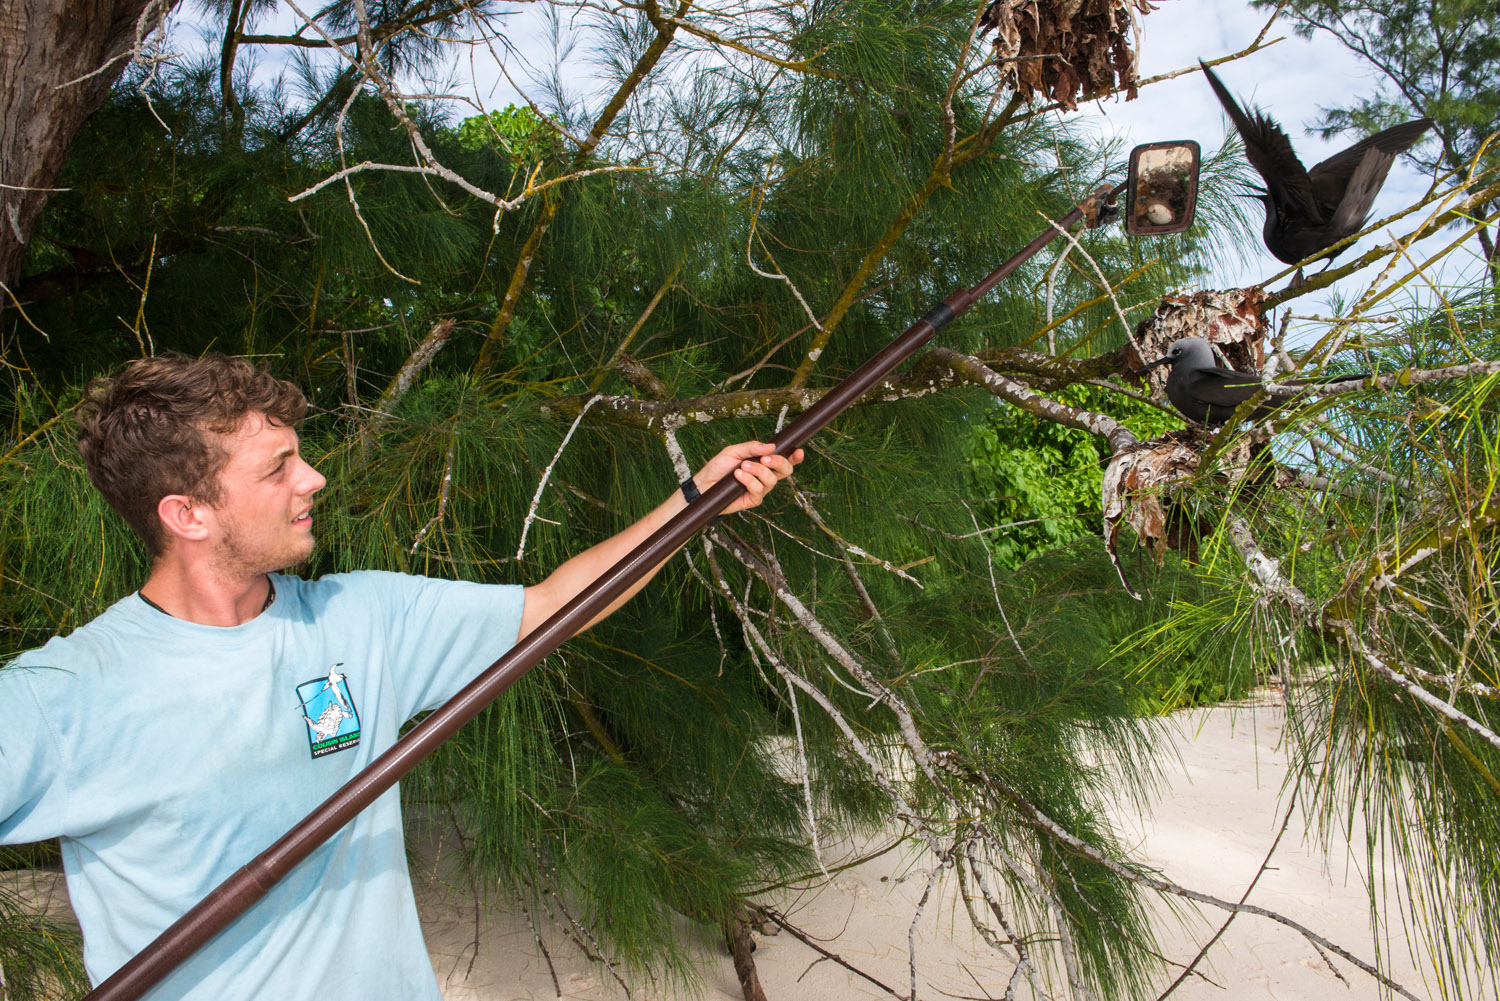 Conservation volunteer checking lesser noddy nests for eggs with mirror, Cousin Island Special Reserve, Seychelles